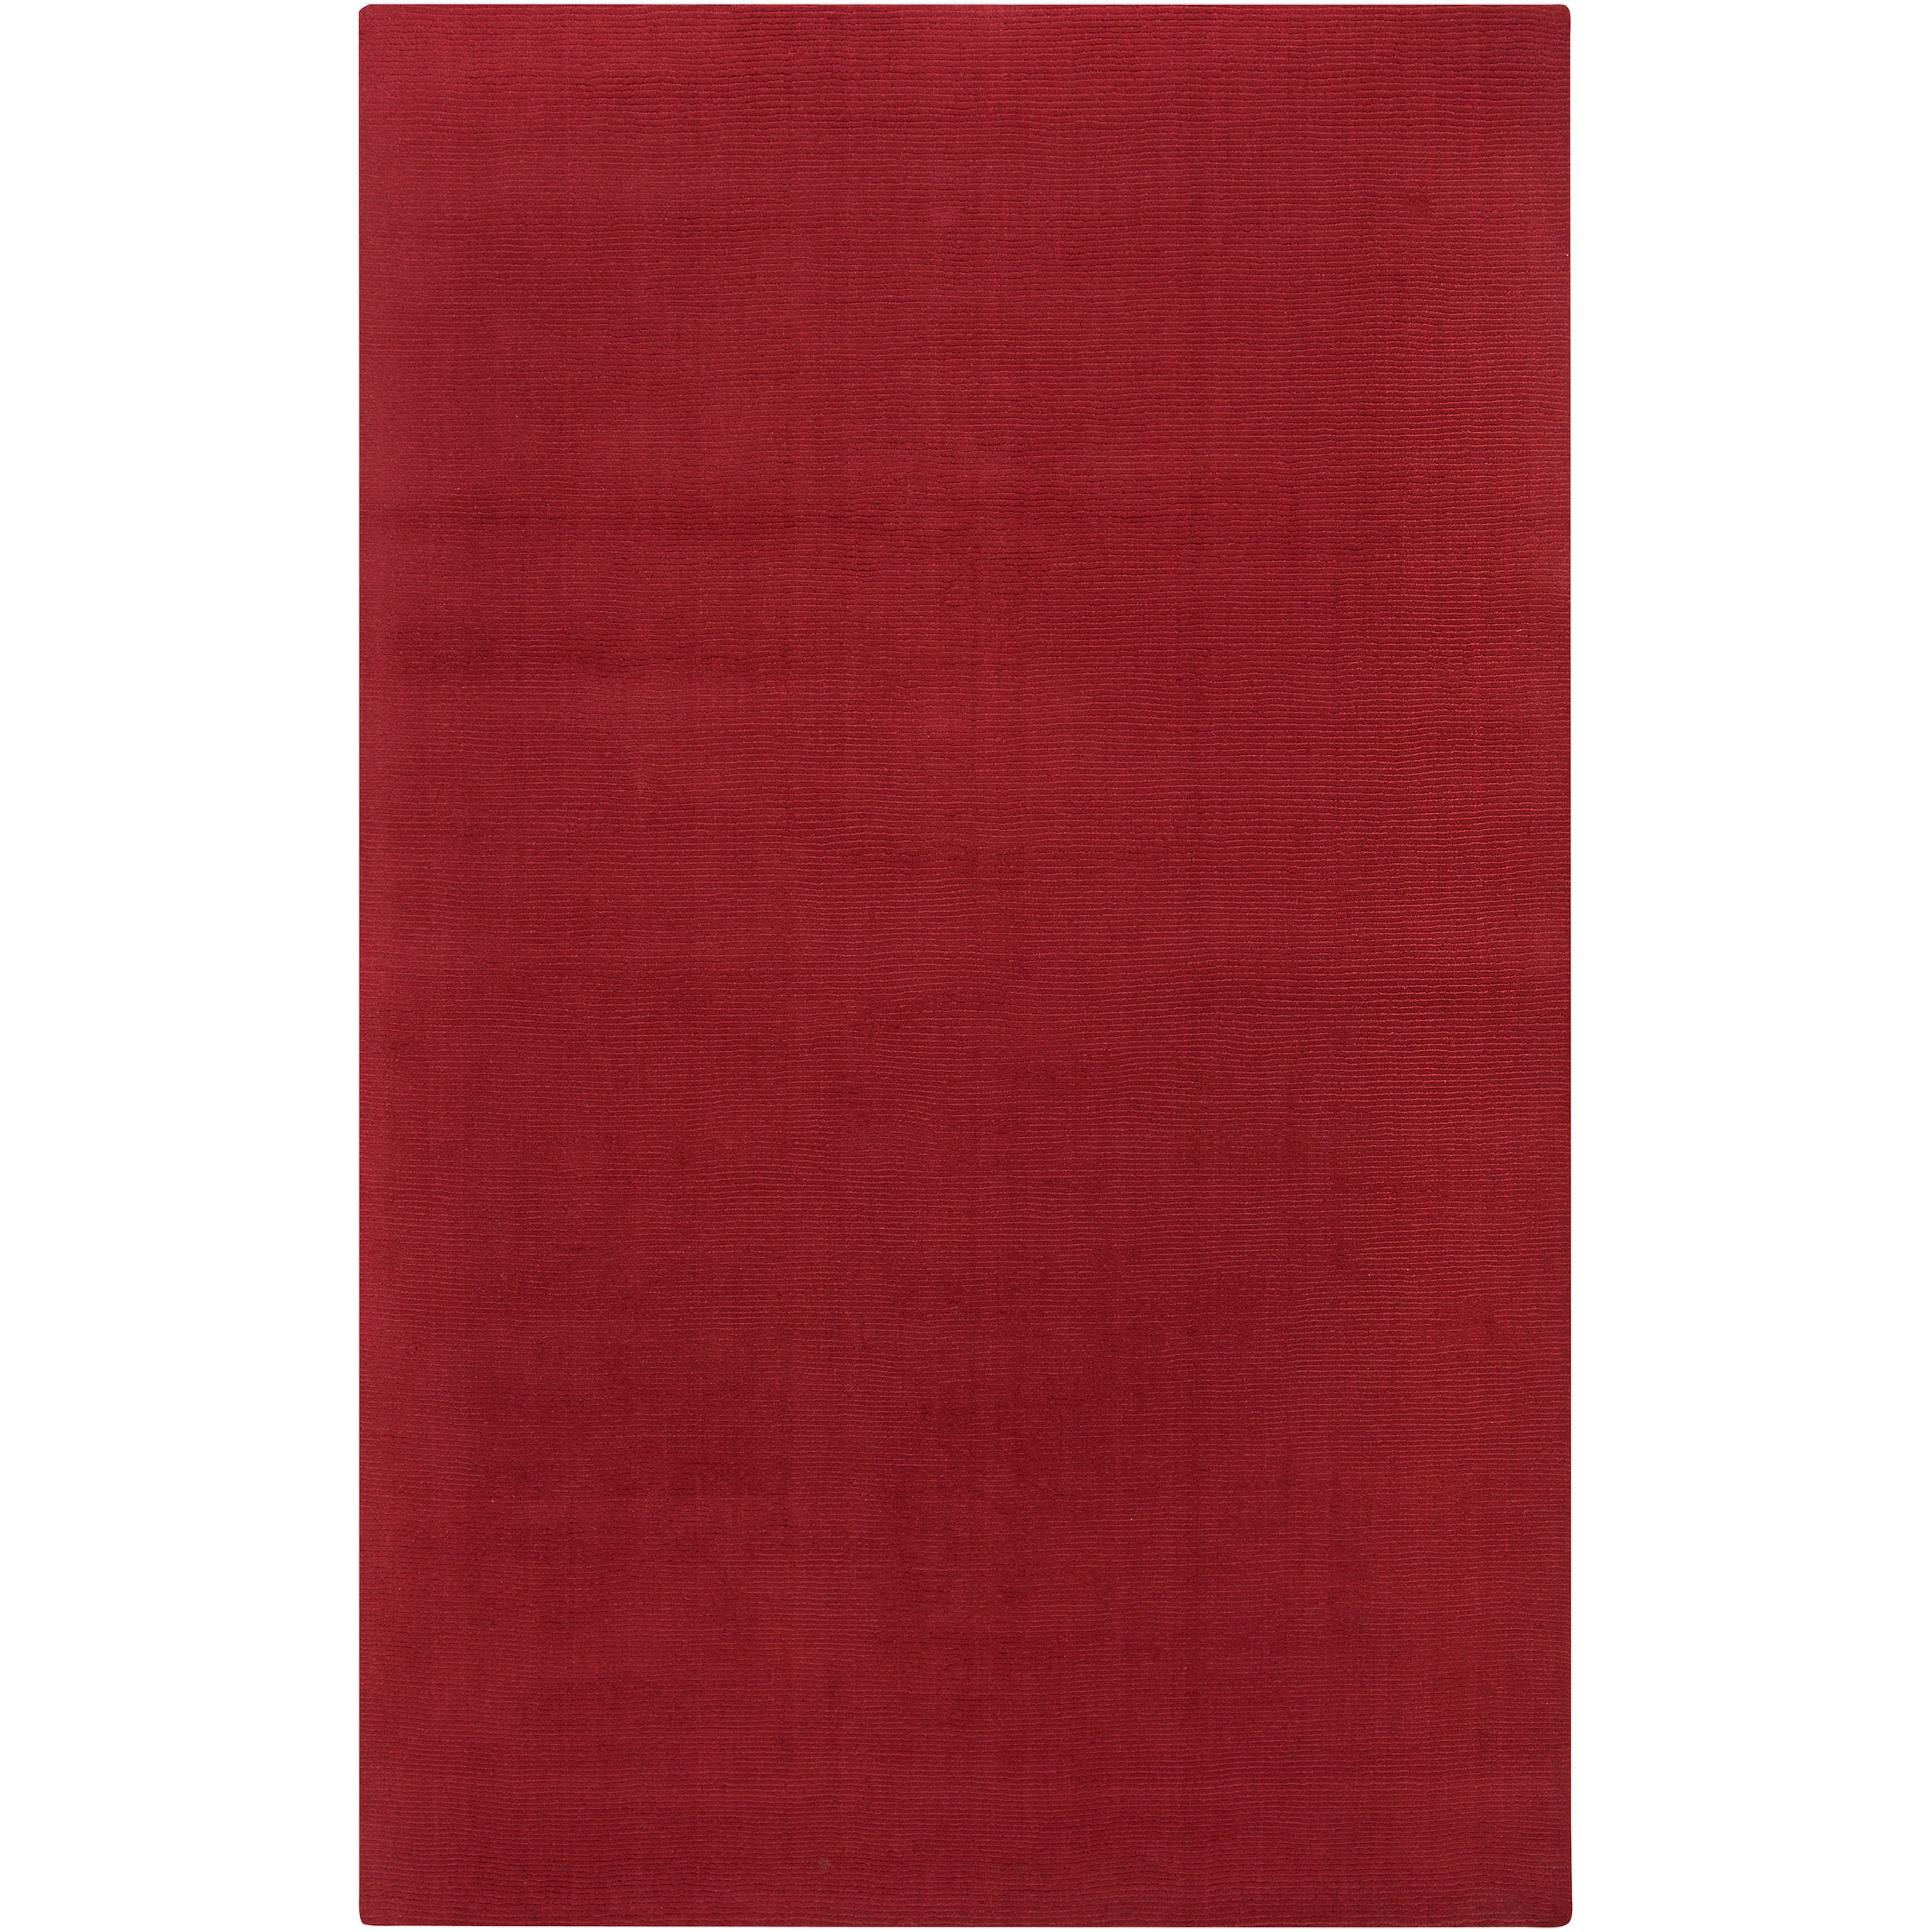 Hand-crafted Red Solid Casual Vaga Wool Area Rug (6' x 9')